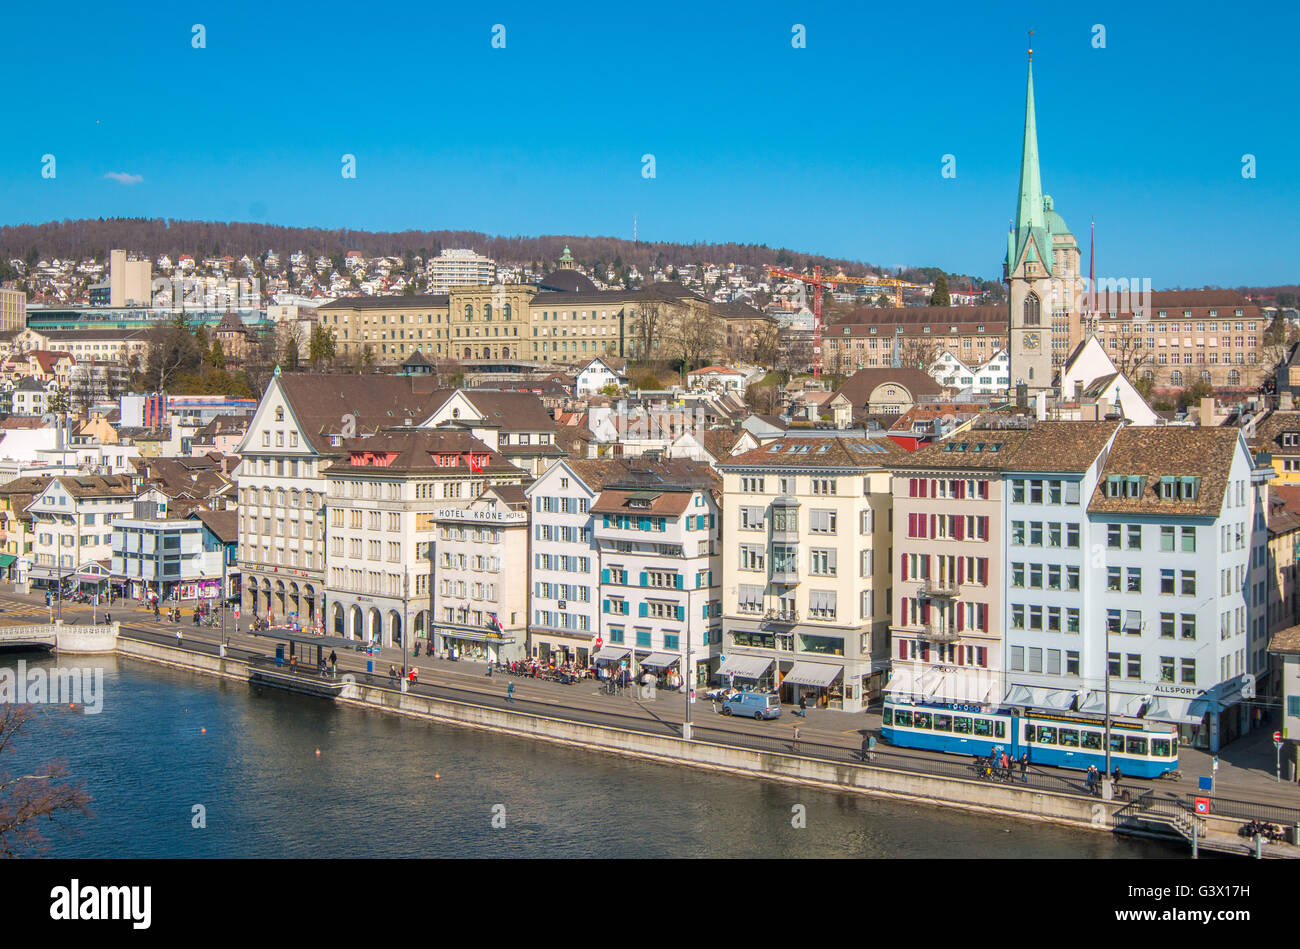 View of Zurich Switzerland - Stock Image